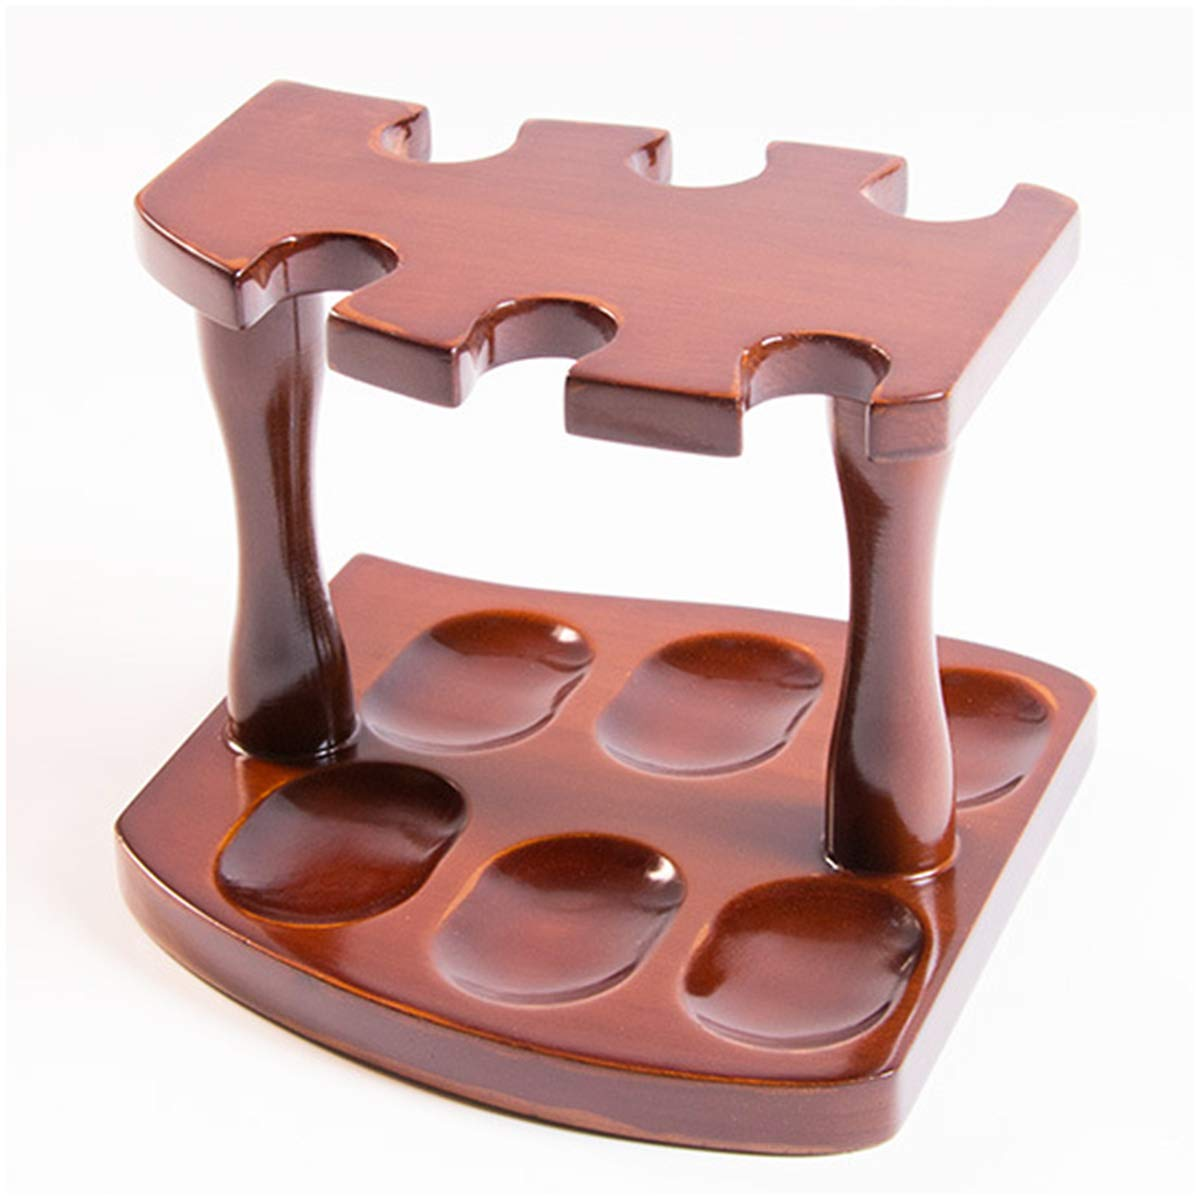 LUCKFY 6 Pipe Wood Tobacco Pipe Stand Rack Holder Wooden Pipe Stand Top-Table Rack Display,Handmade by LUCKFY